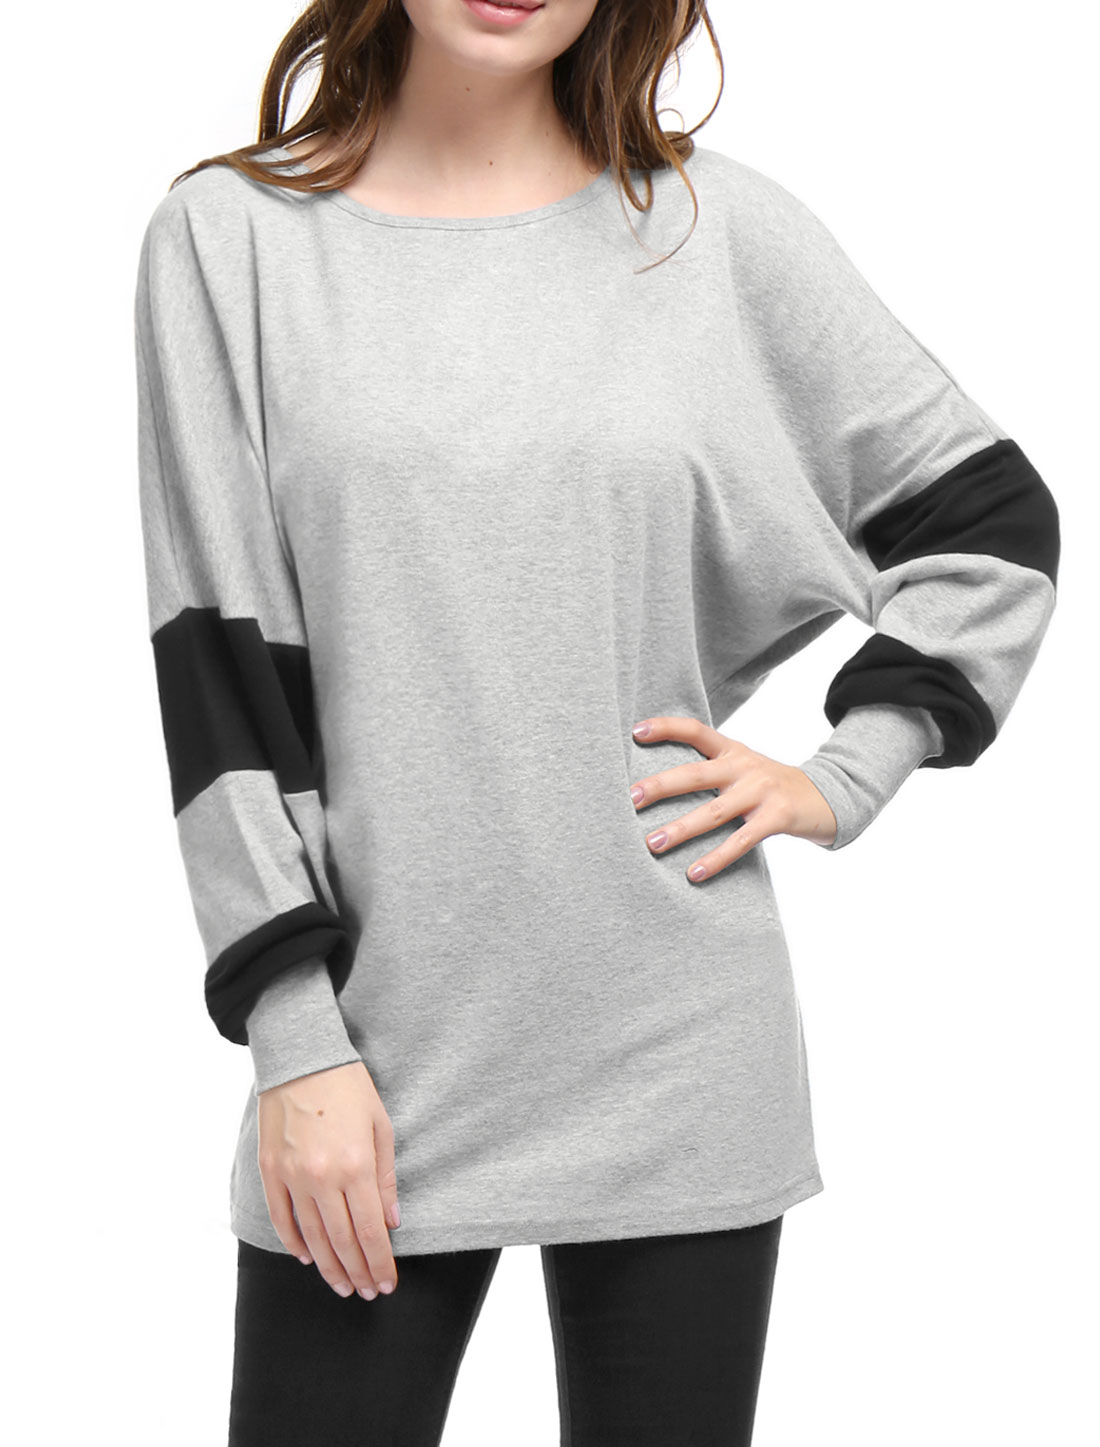 Women Color Block Batwing Sleeves Loose Tunic Top Light Gray S